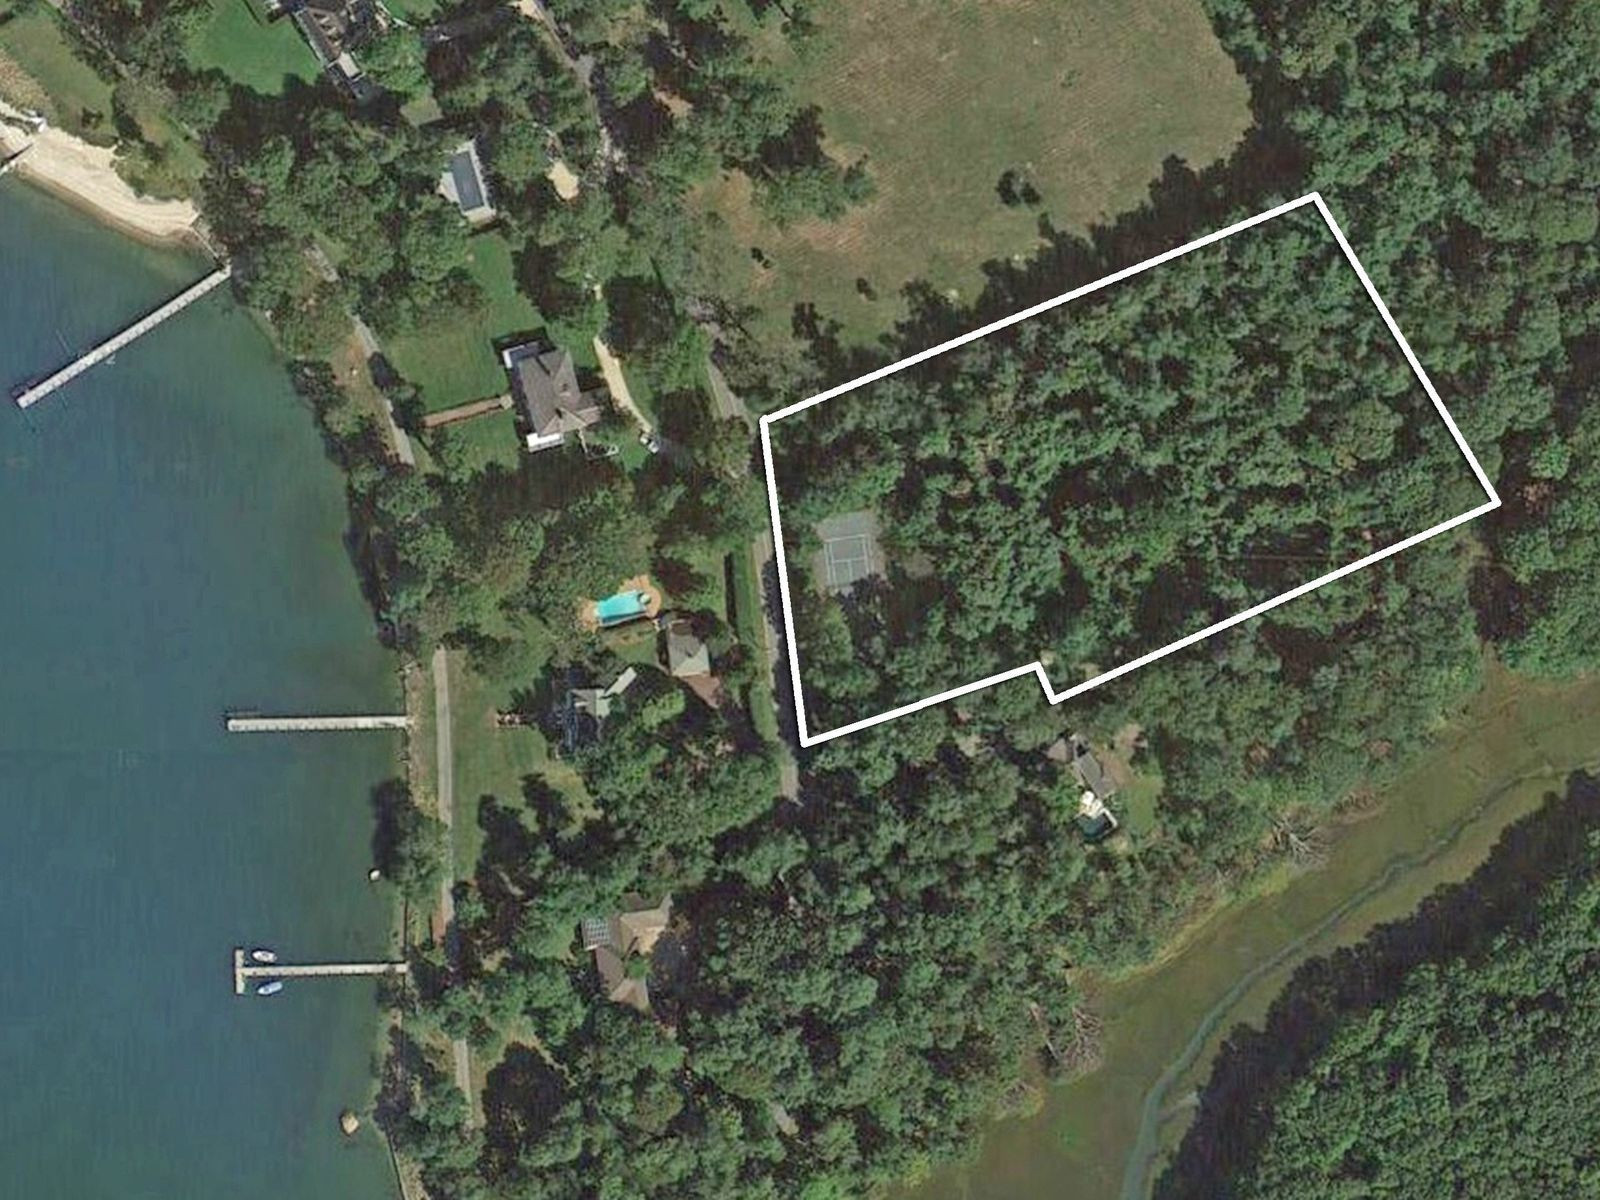 Desirable 3.2 Acre Lot in Dering Harbor, Shelter Island NY Acreage / Lots - Hamptons Real Estate